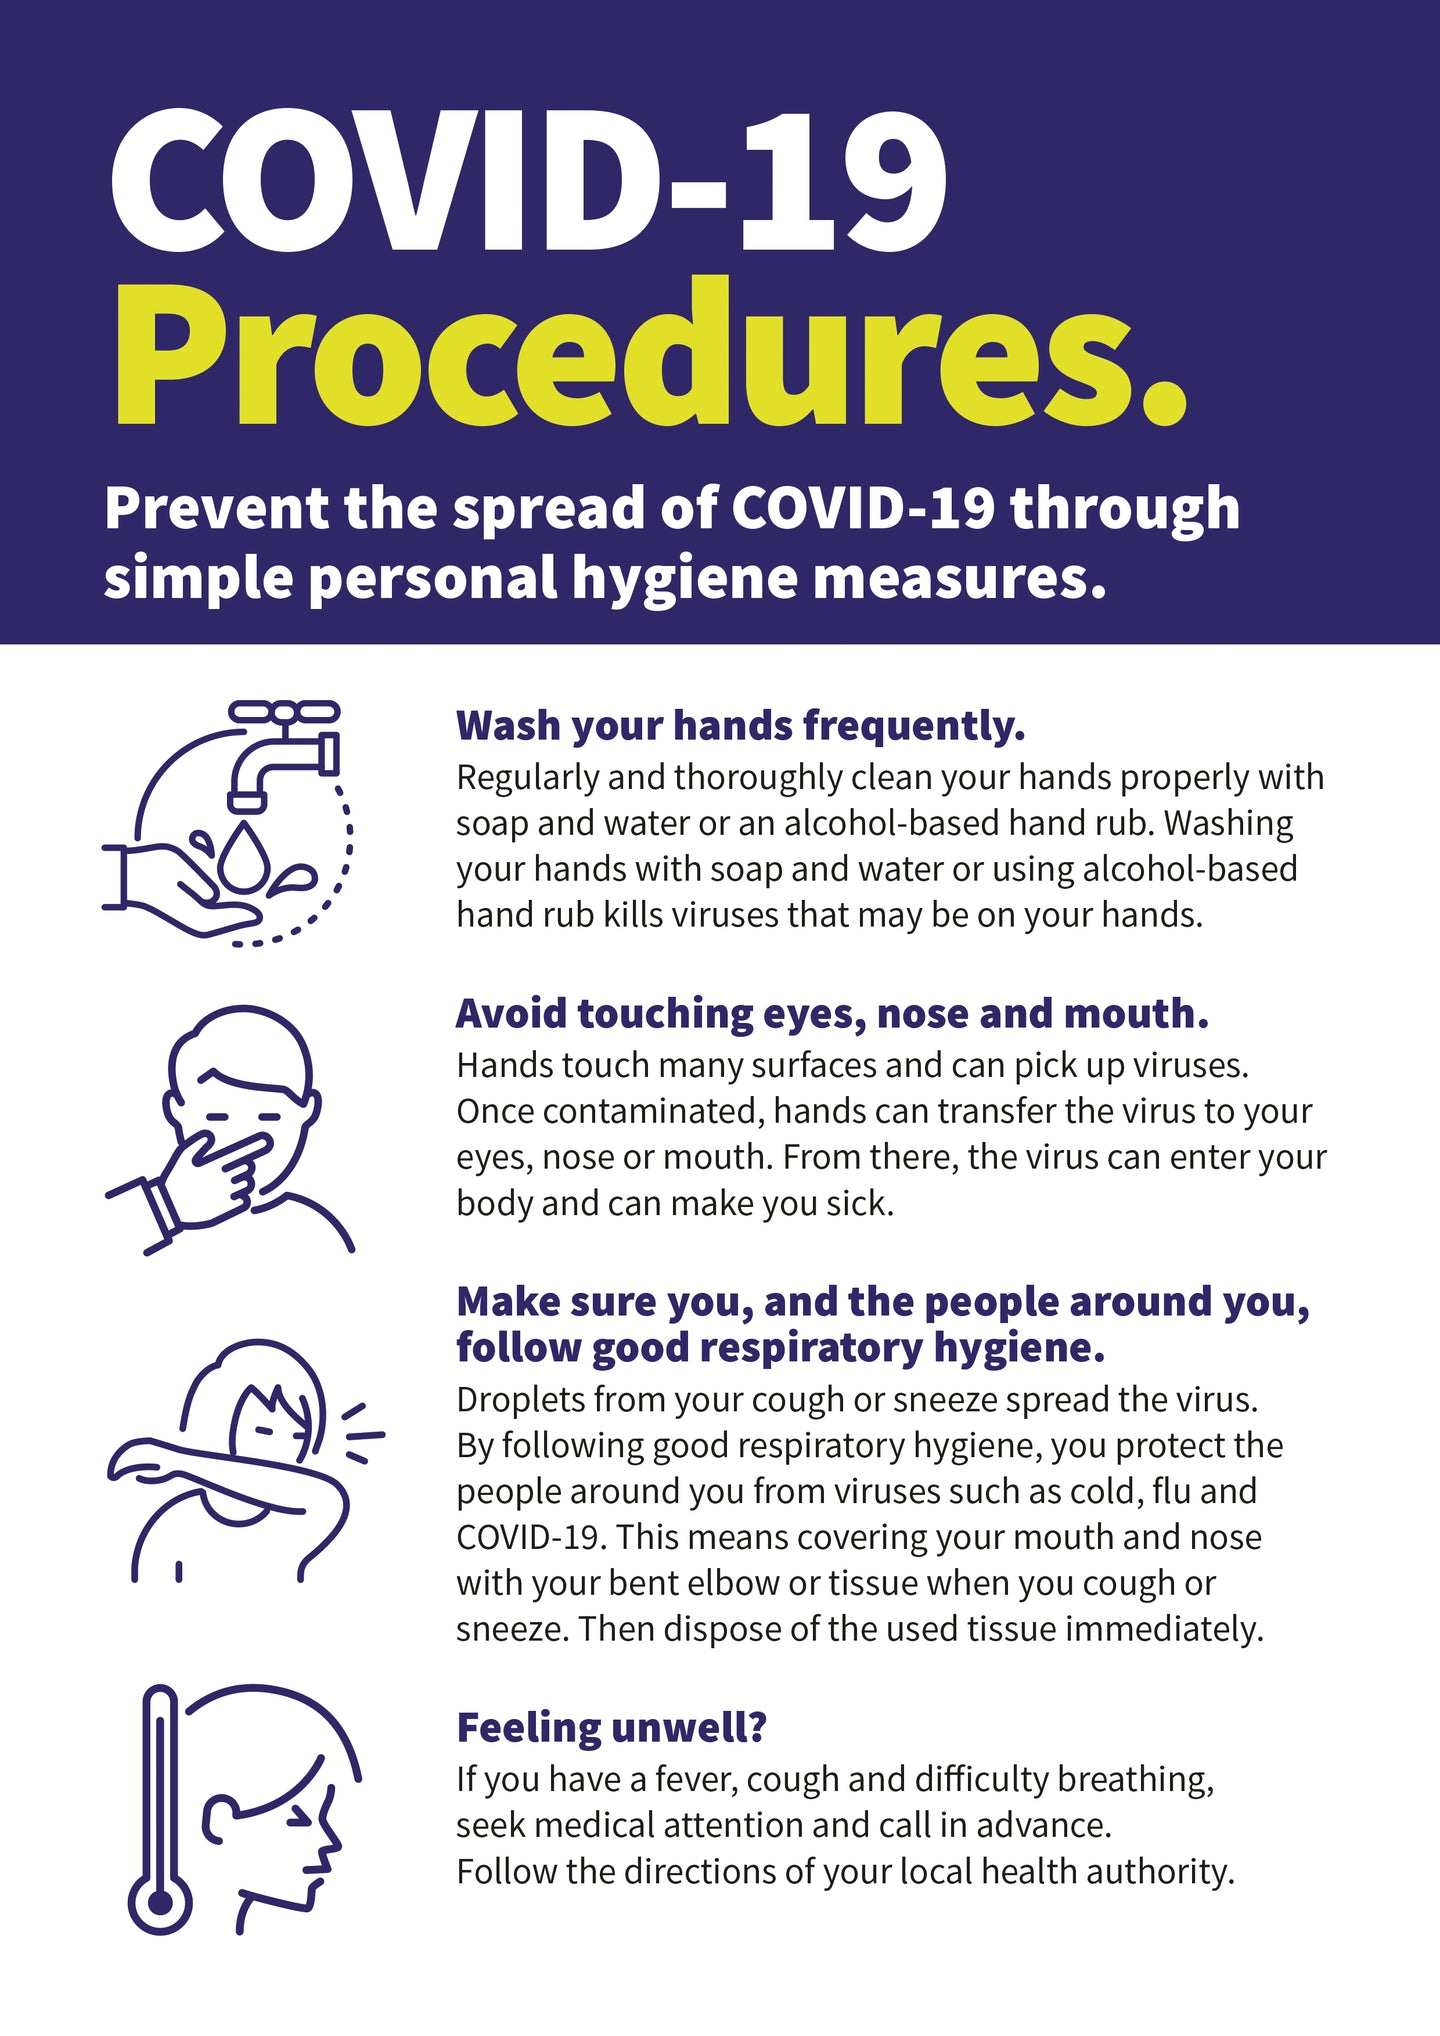 Covid-19 Procedures hardwearing poster